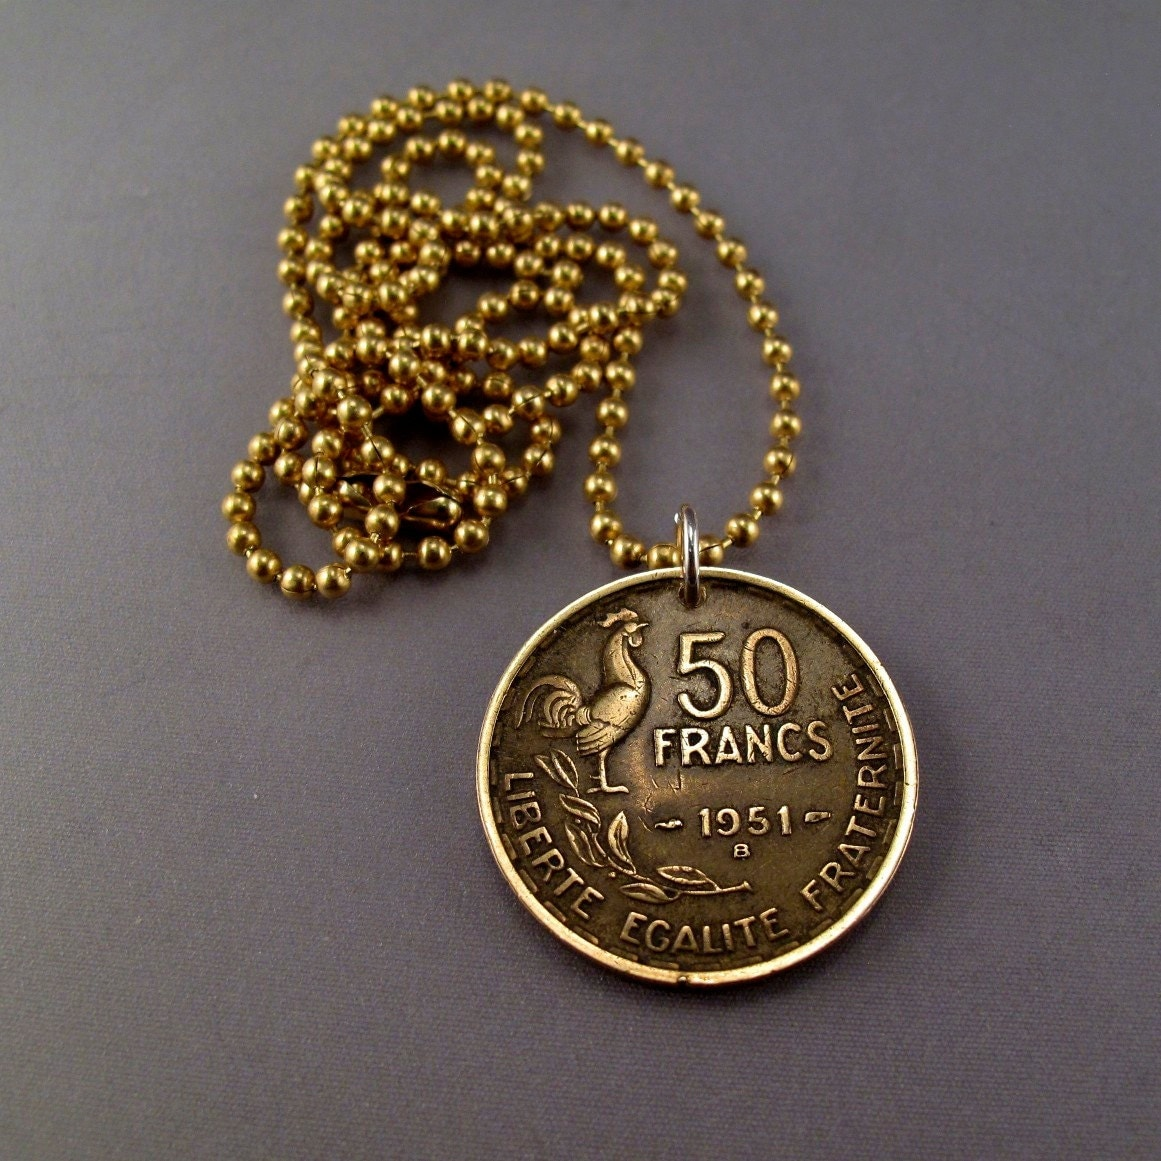 coin jewelry coin necklace franc liberate egalite